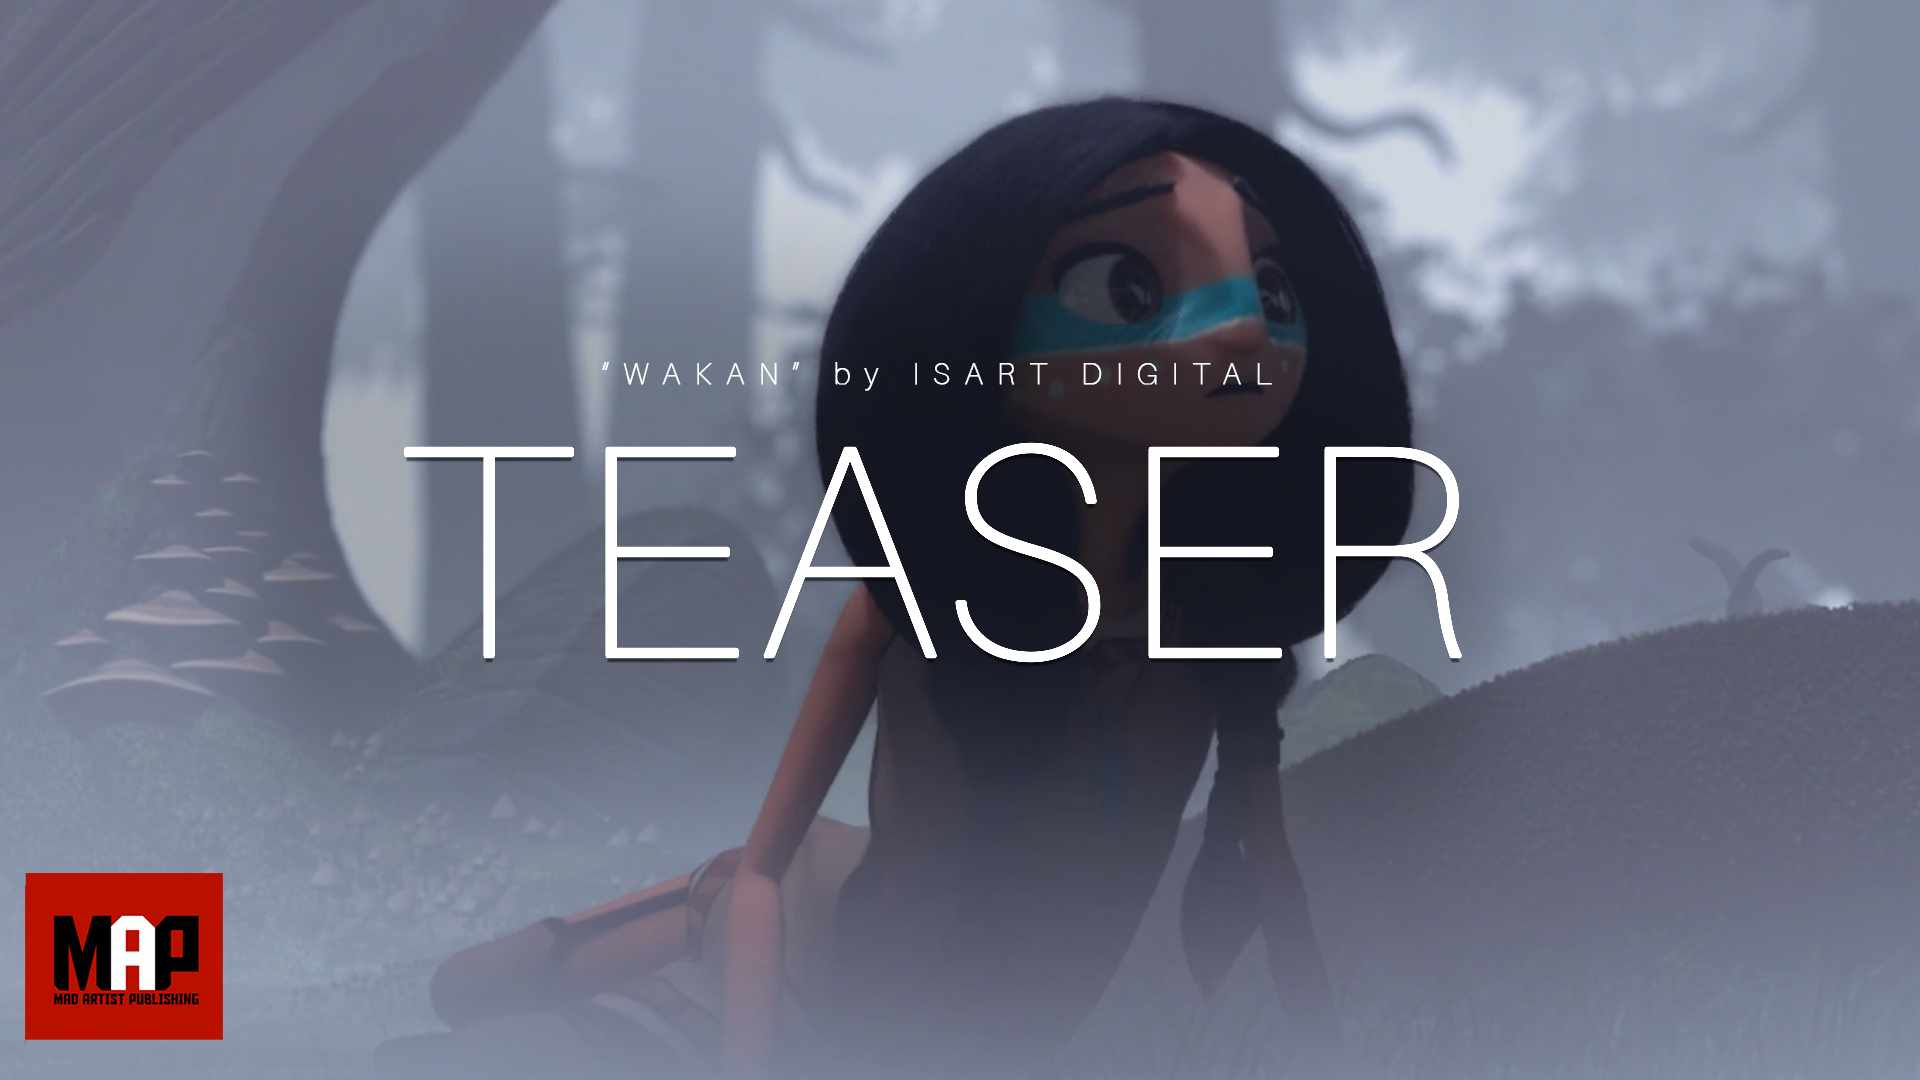 TEASER Trailer | CGI 3d Animated Short Film ** WAKAN ** Sad Fantasy Animation Movie by ISART DIGITAL